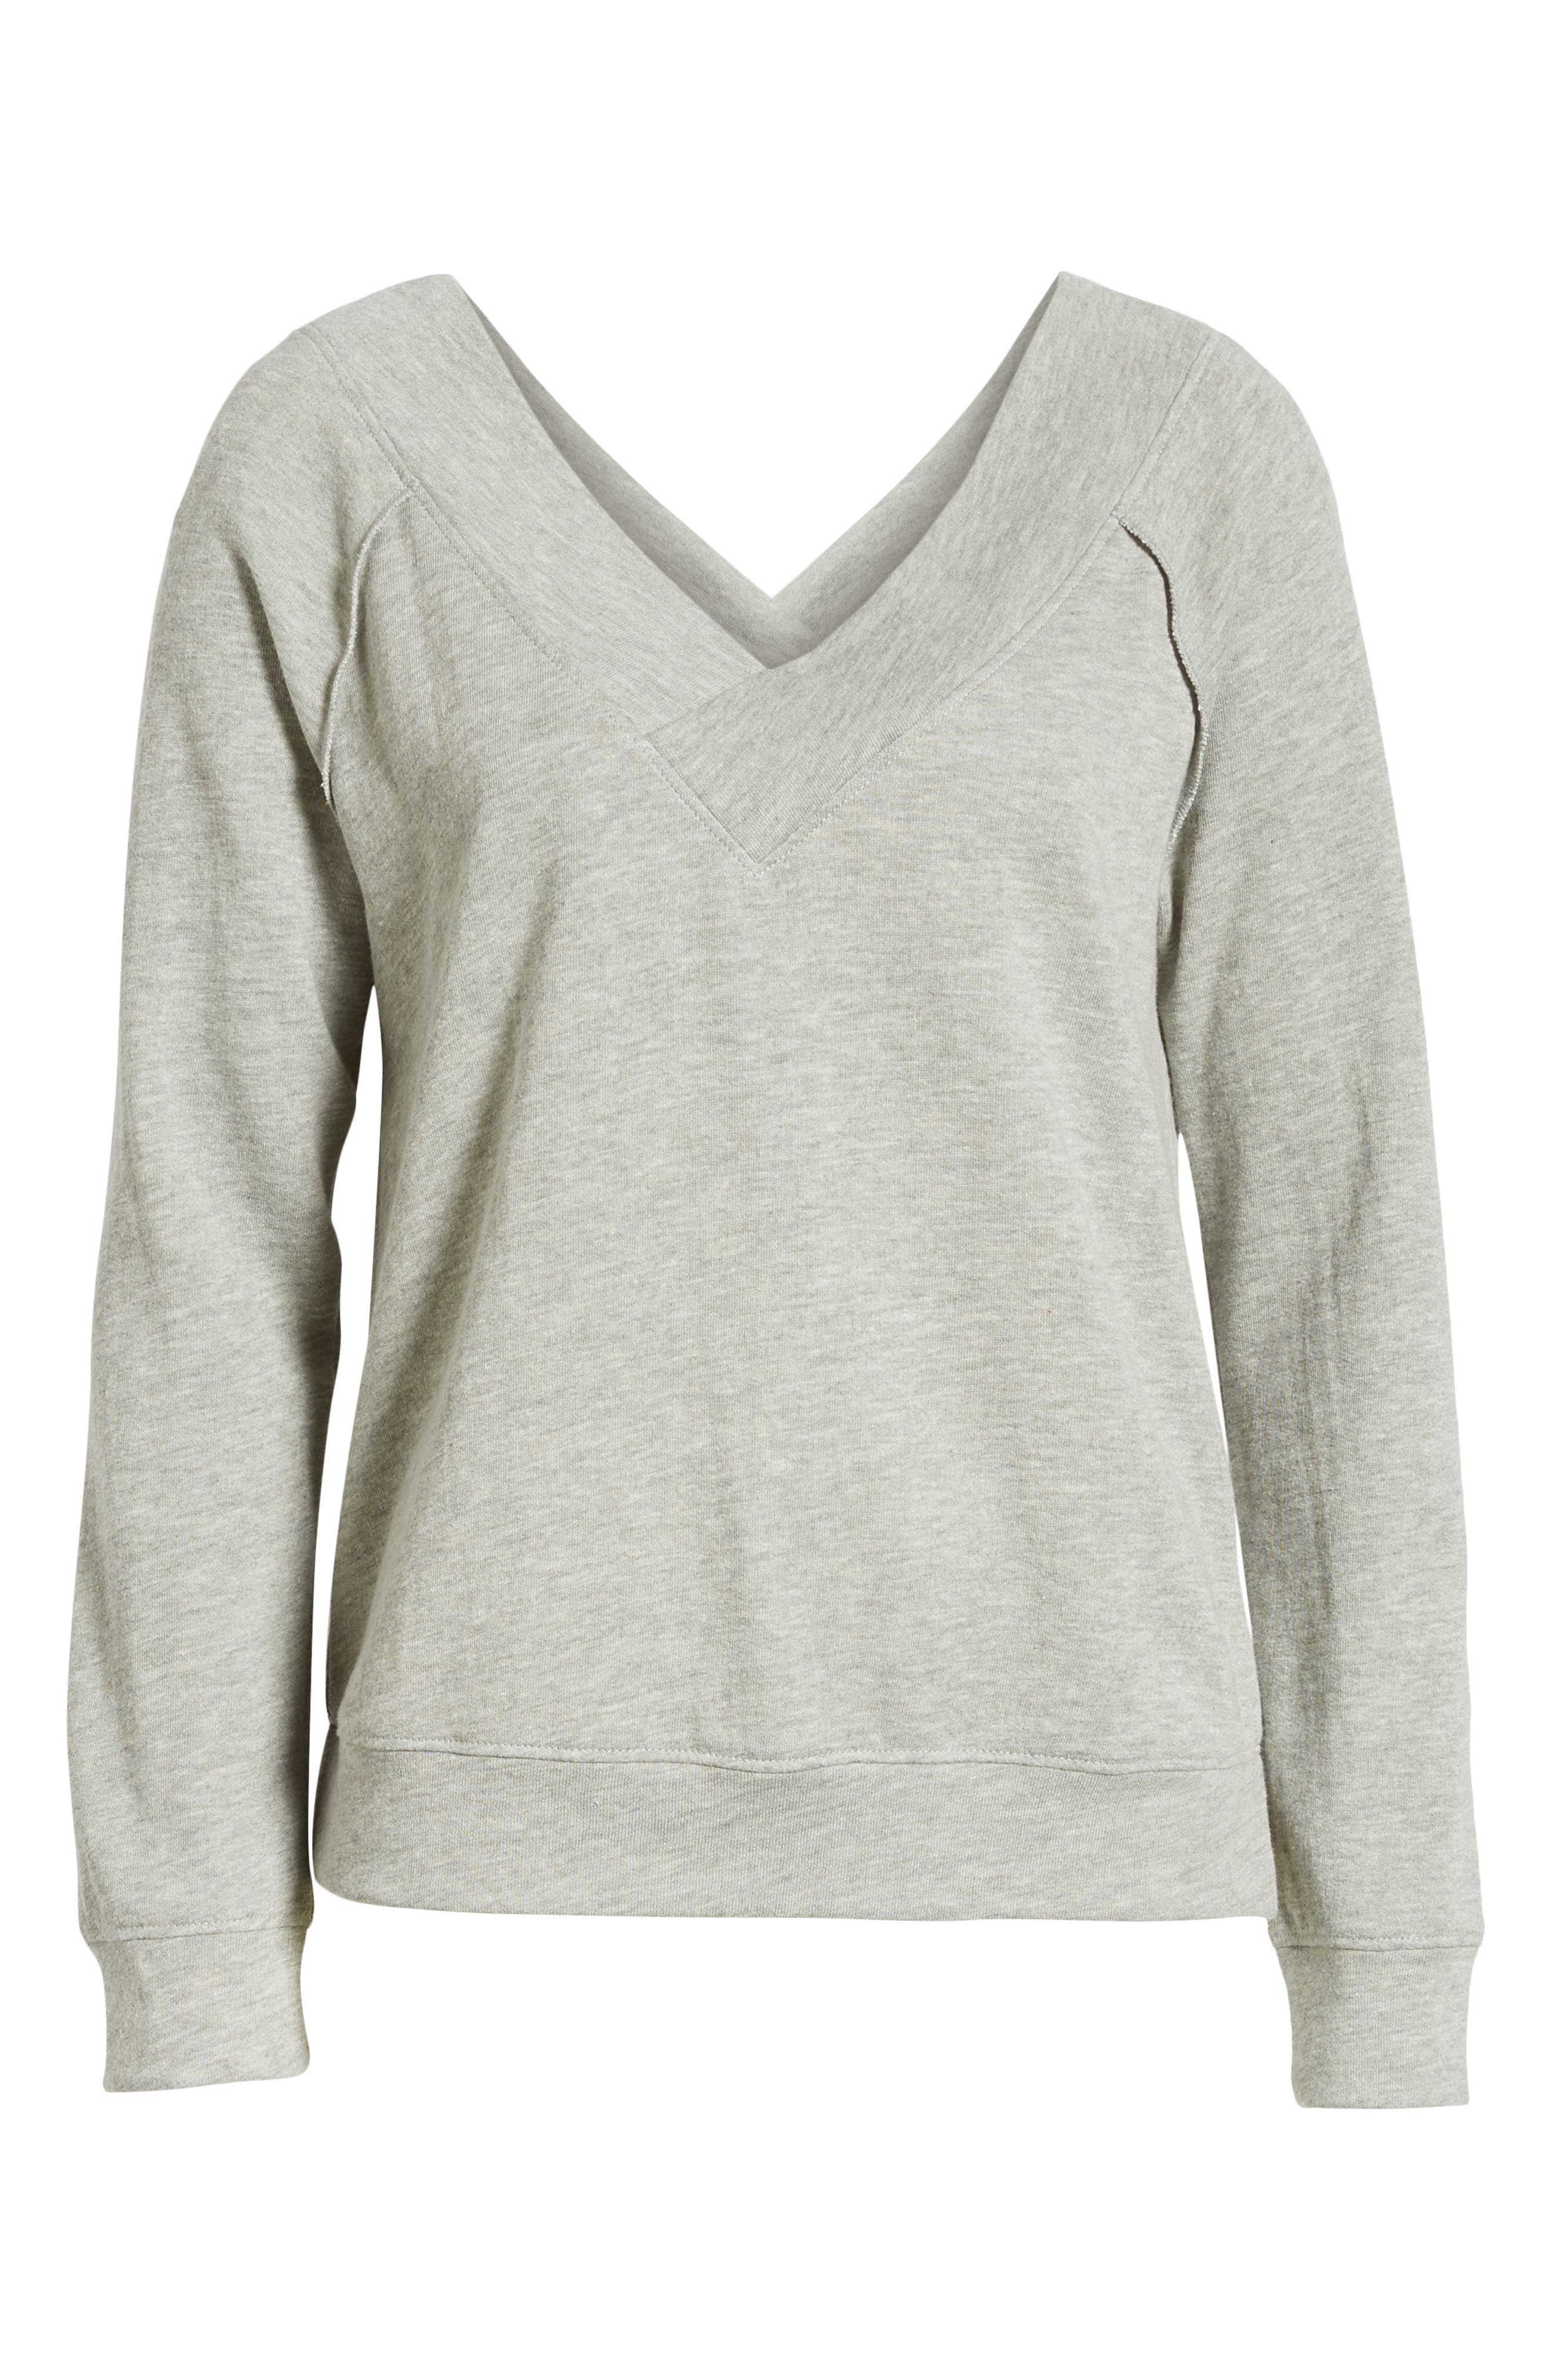 BP., Double V-neck Sweatshirt, Alternate thumbnail 7, color, GREY PEARL HEATHER